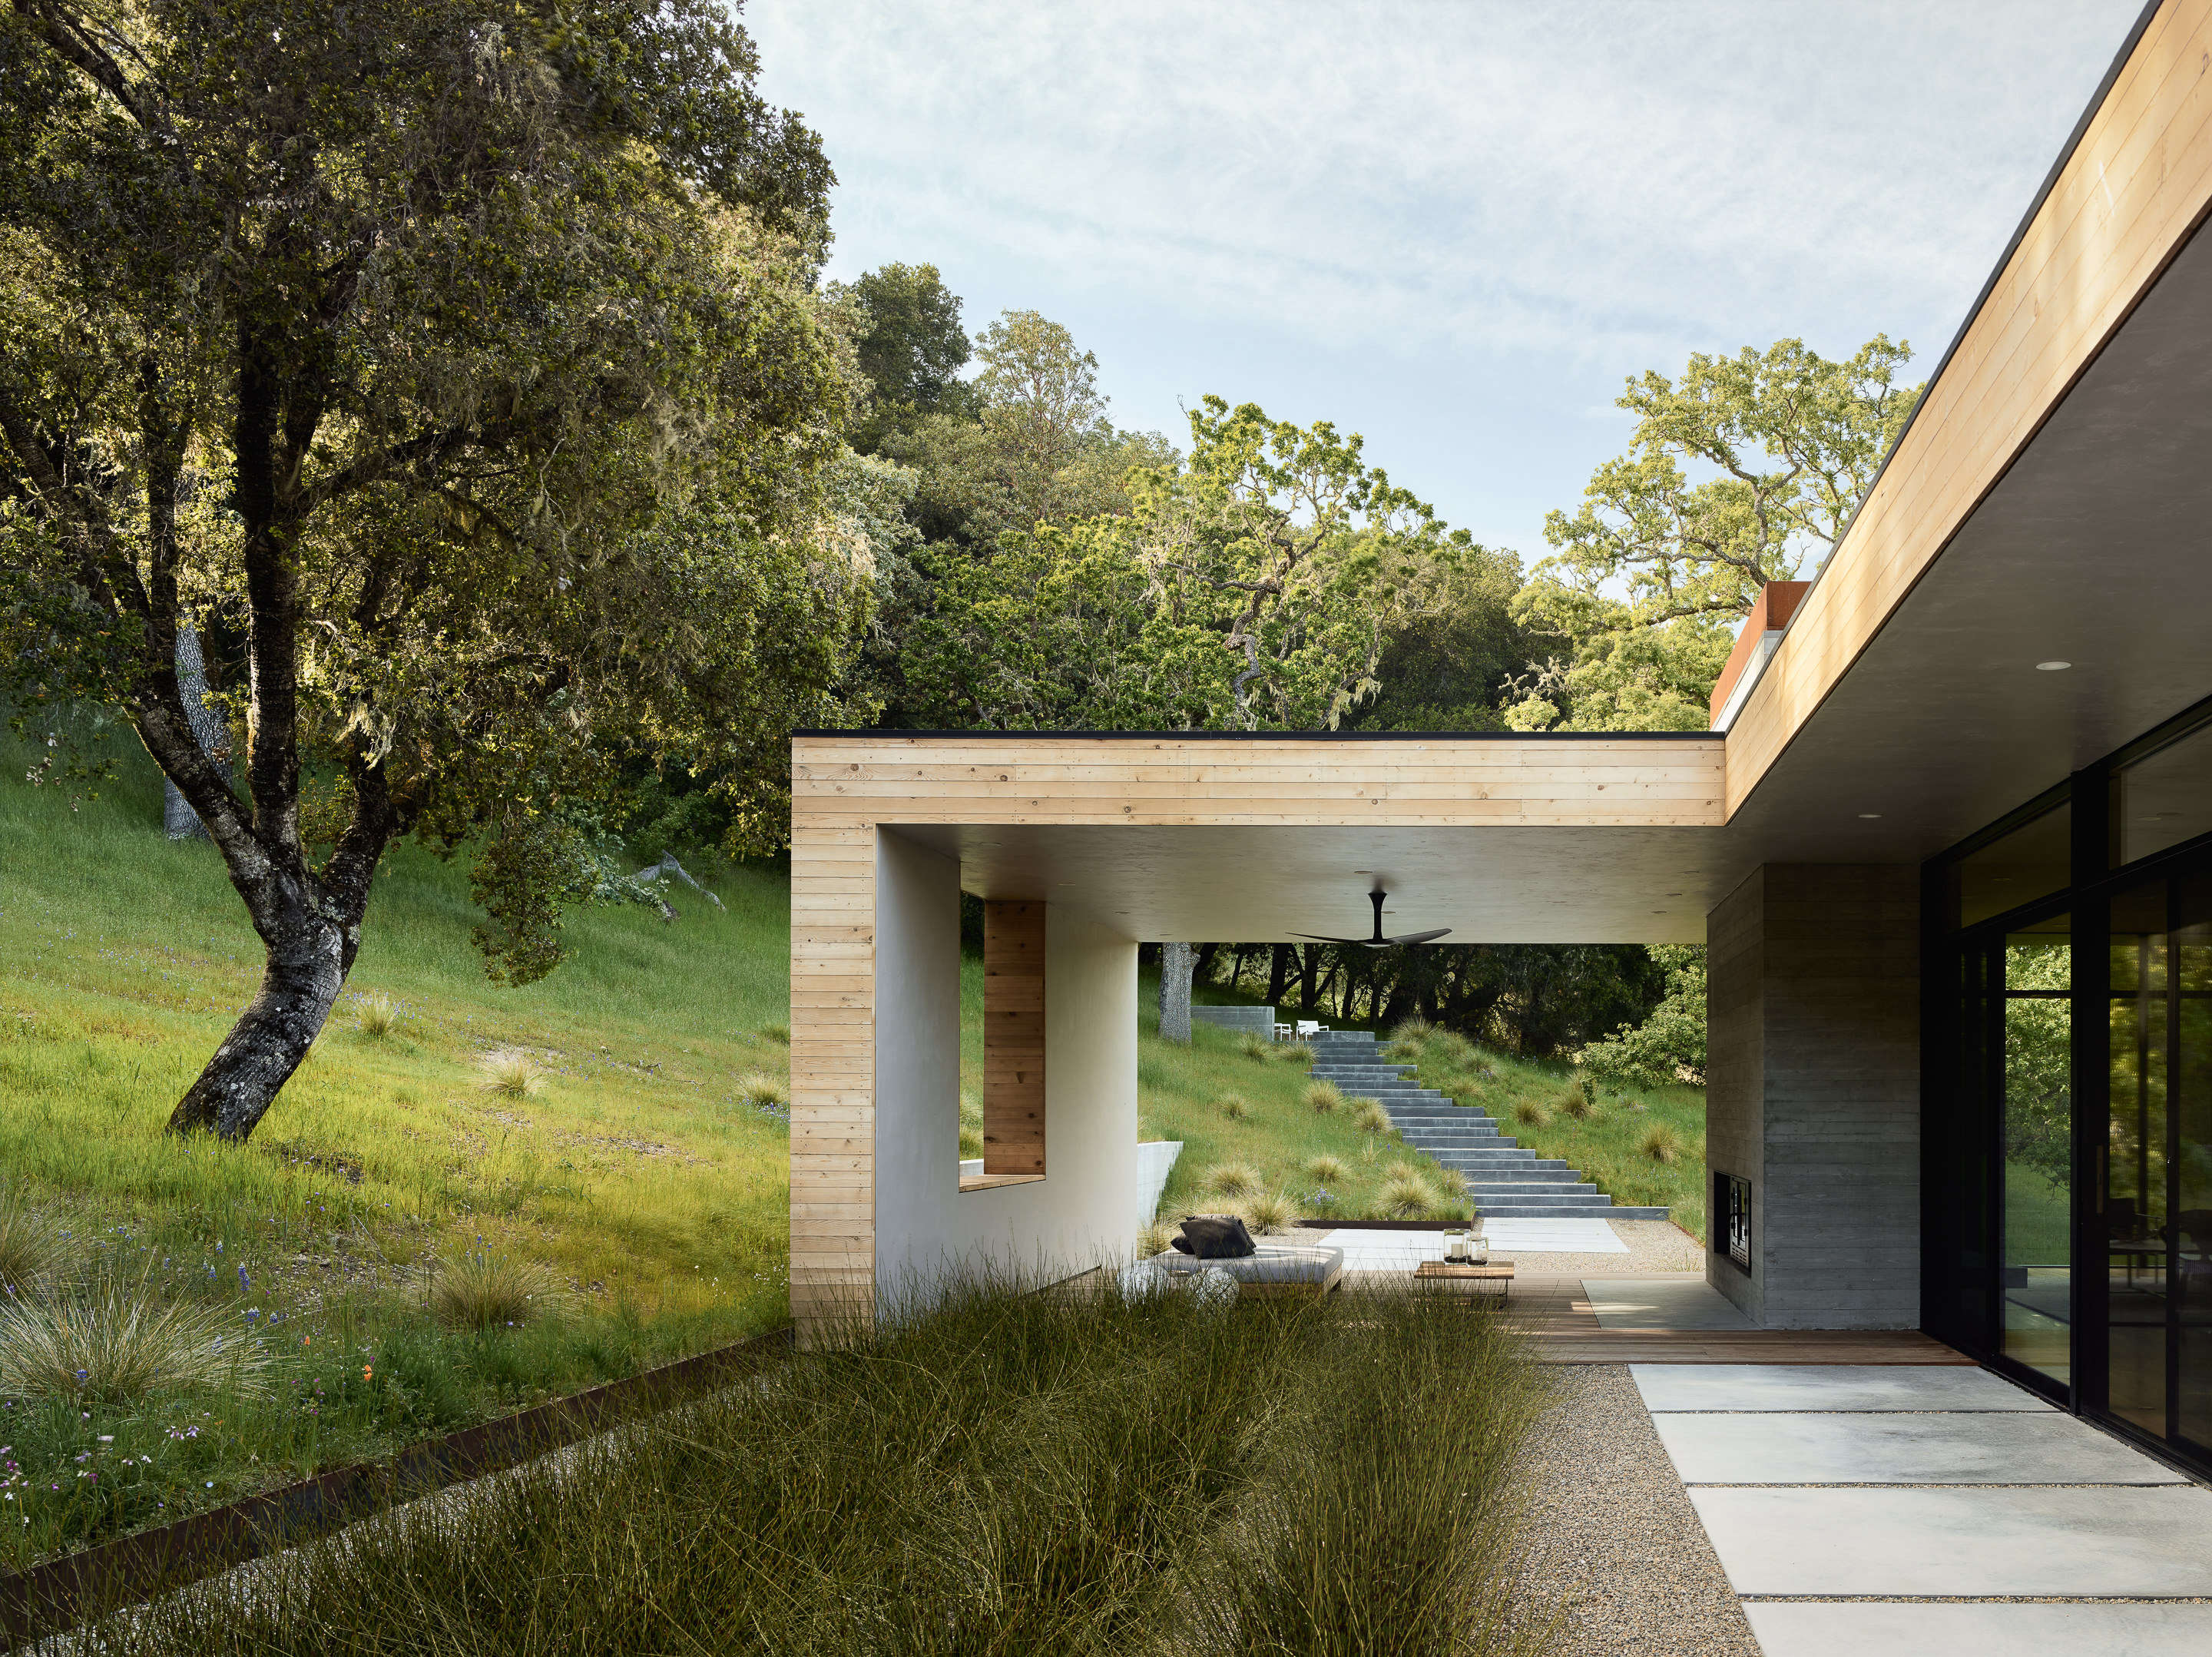 Landscape architect visit the california life outdoor for Southern california architecture firms